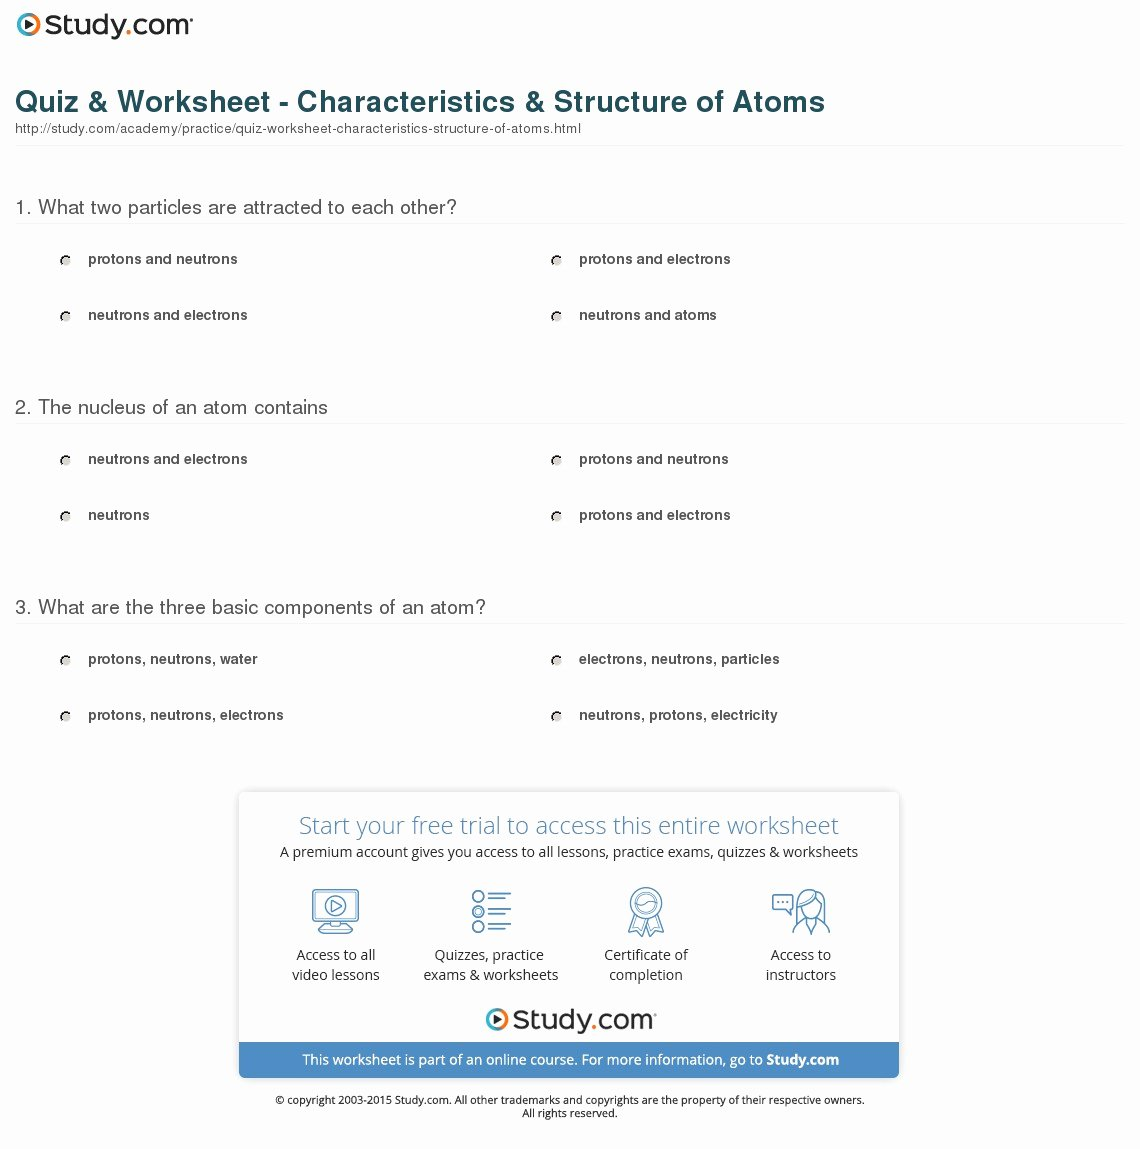 Atomic Structure Practice Worksheet Answers Lovely Quiz & Worksheet Characteristics & Structure Of atoms